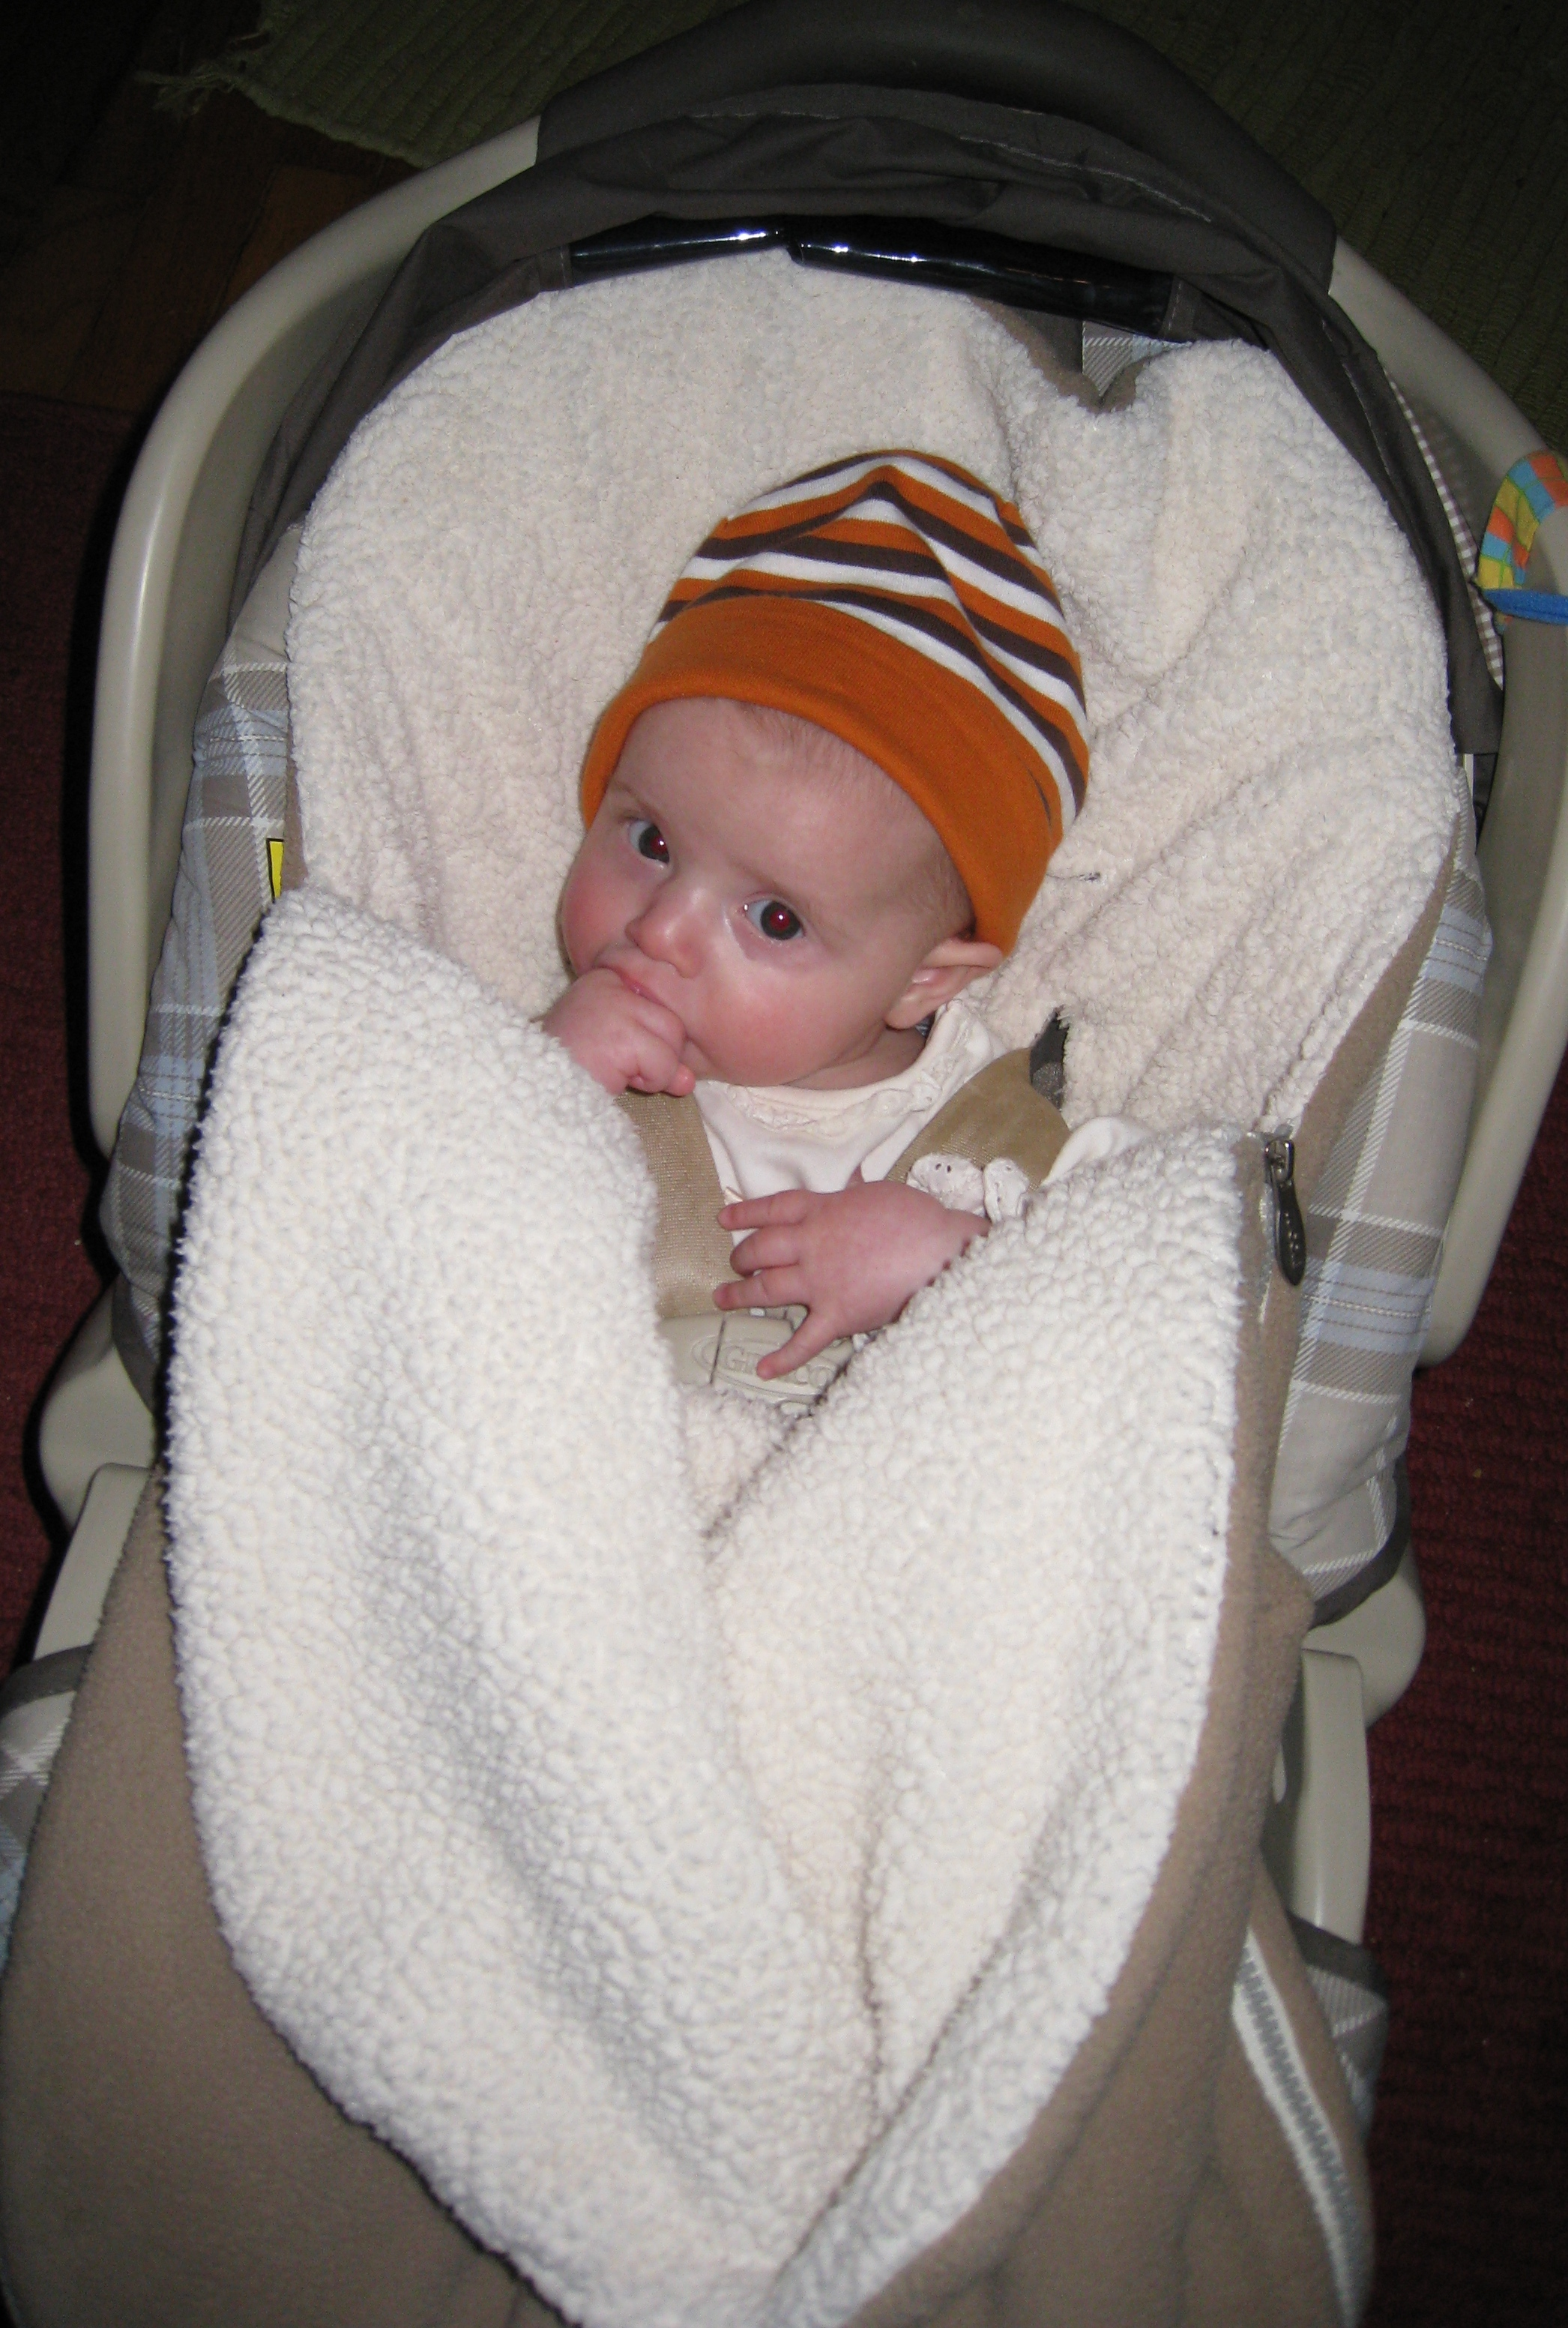 kivrin-in-carseat-12-2-08